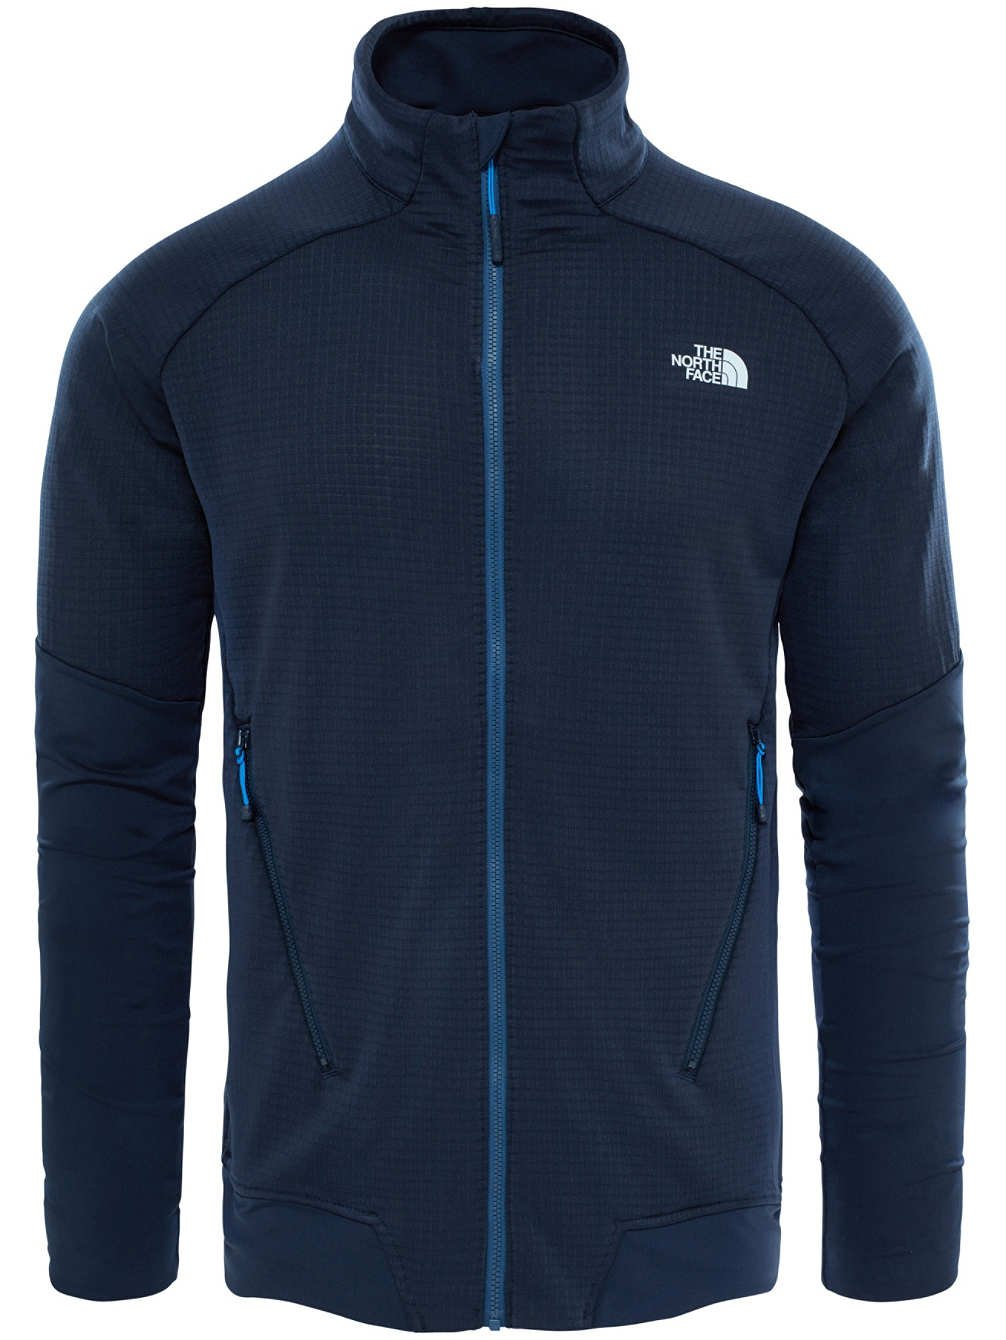 The The North Face M kantan Full Zip Fleece, Herren